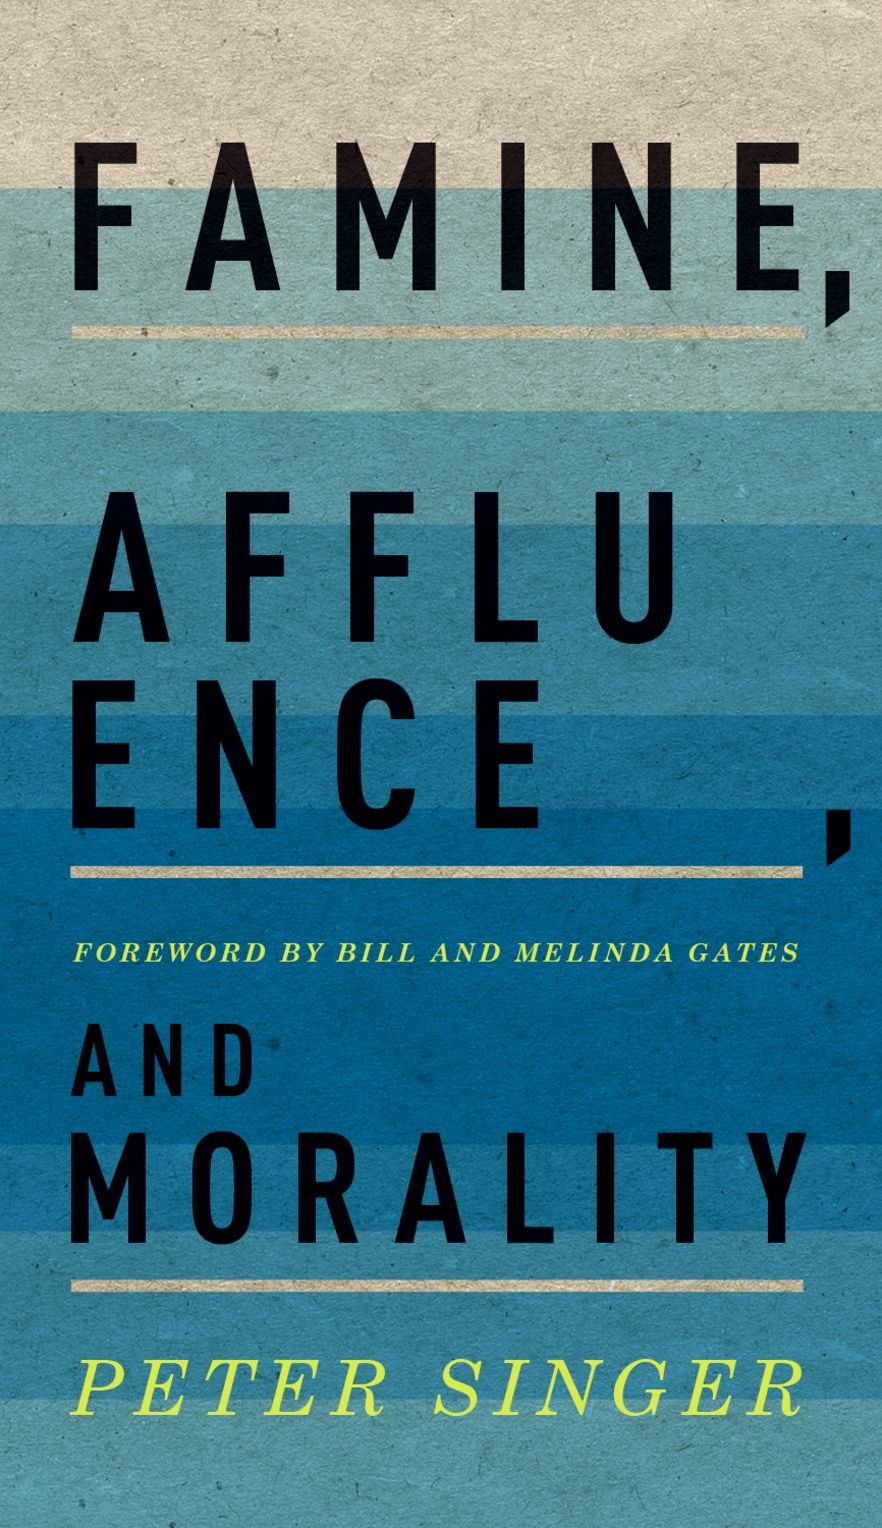 Famine, Affluence, and Morality: Amazon.co.uk: Peter Singer, Bill ...